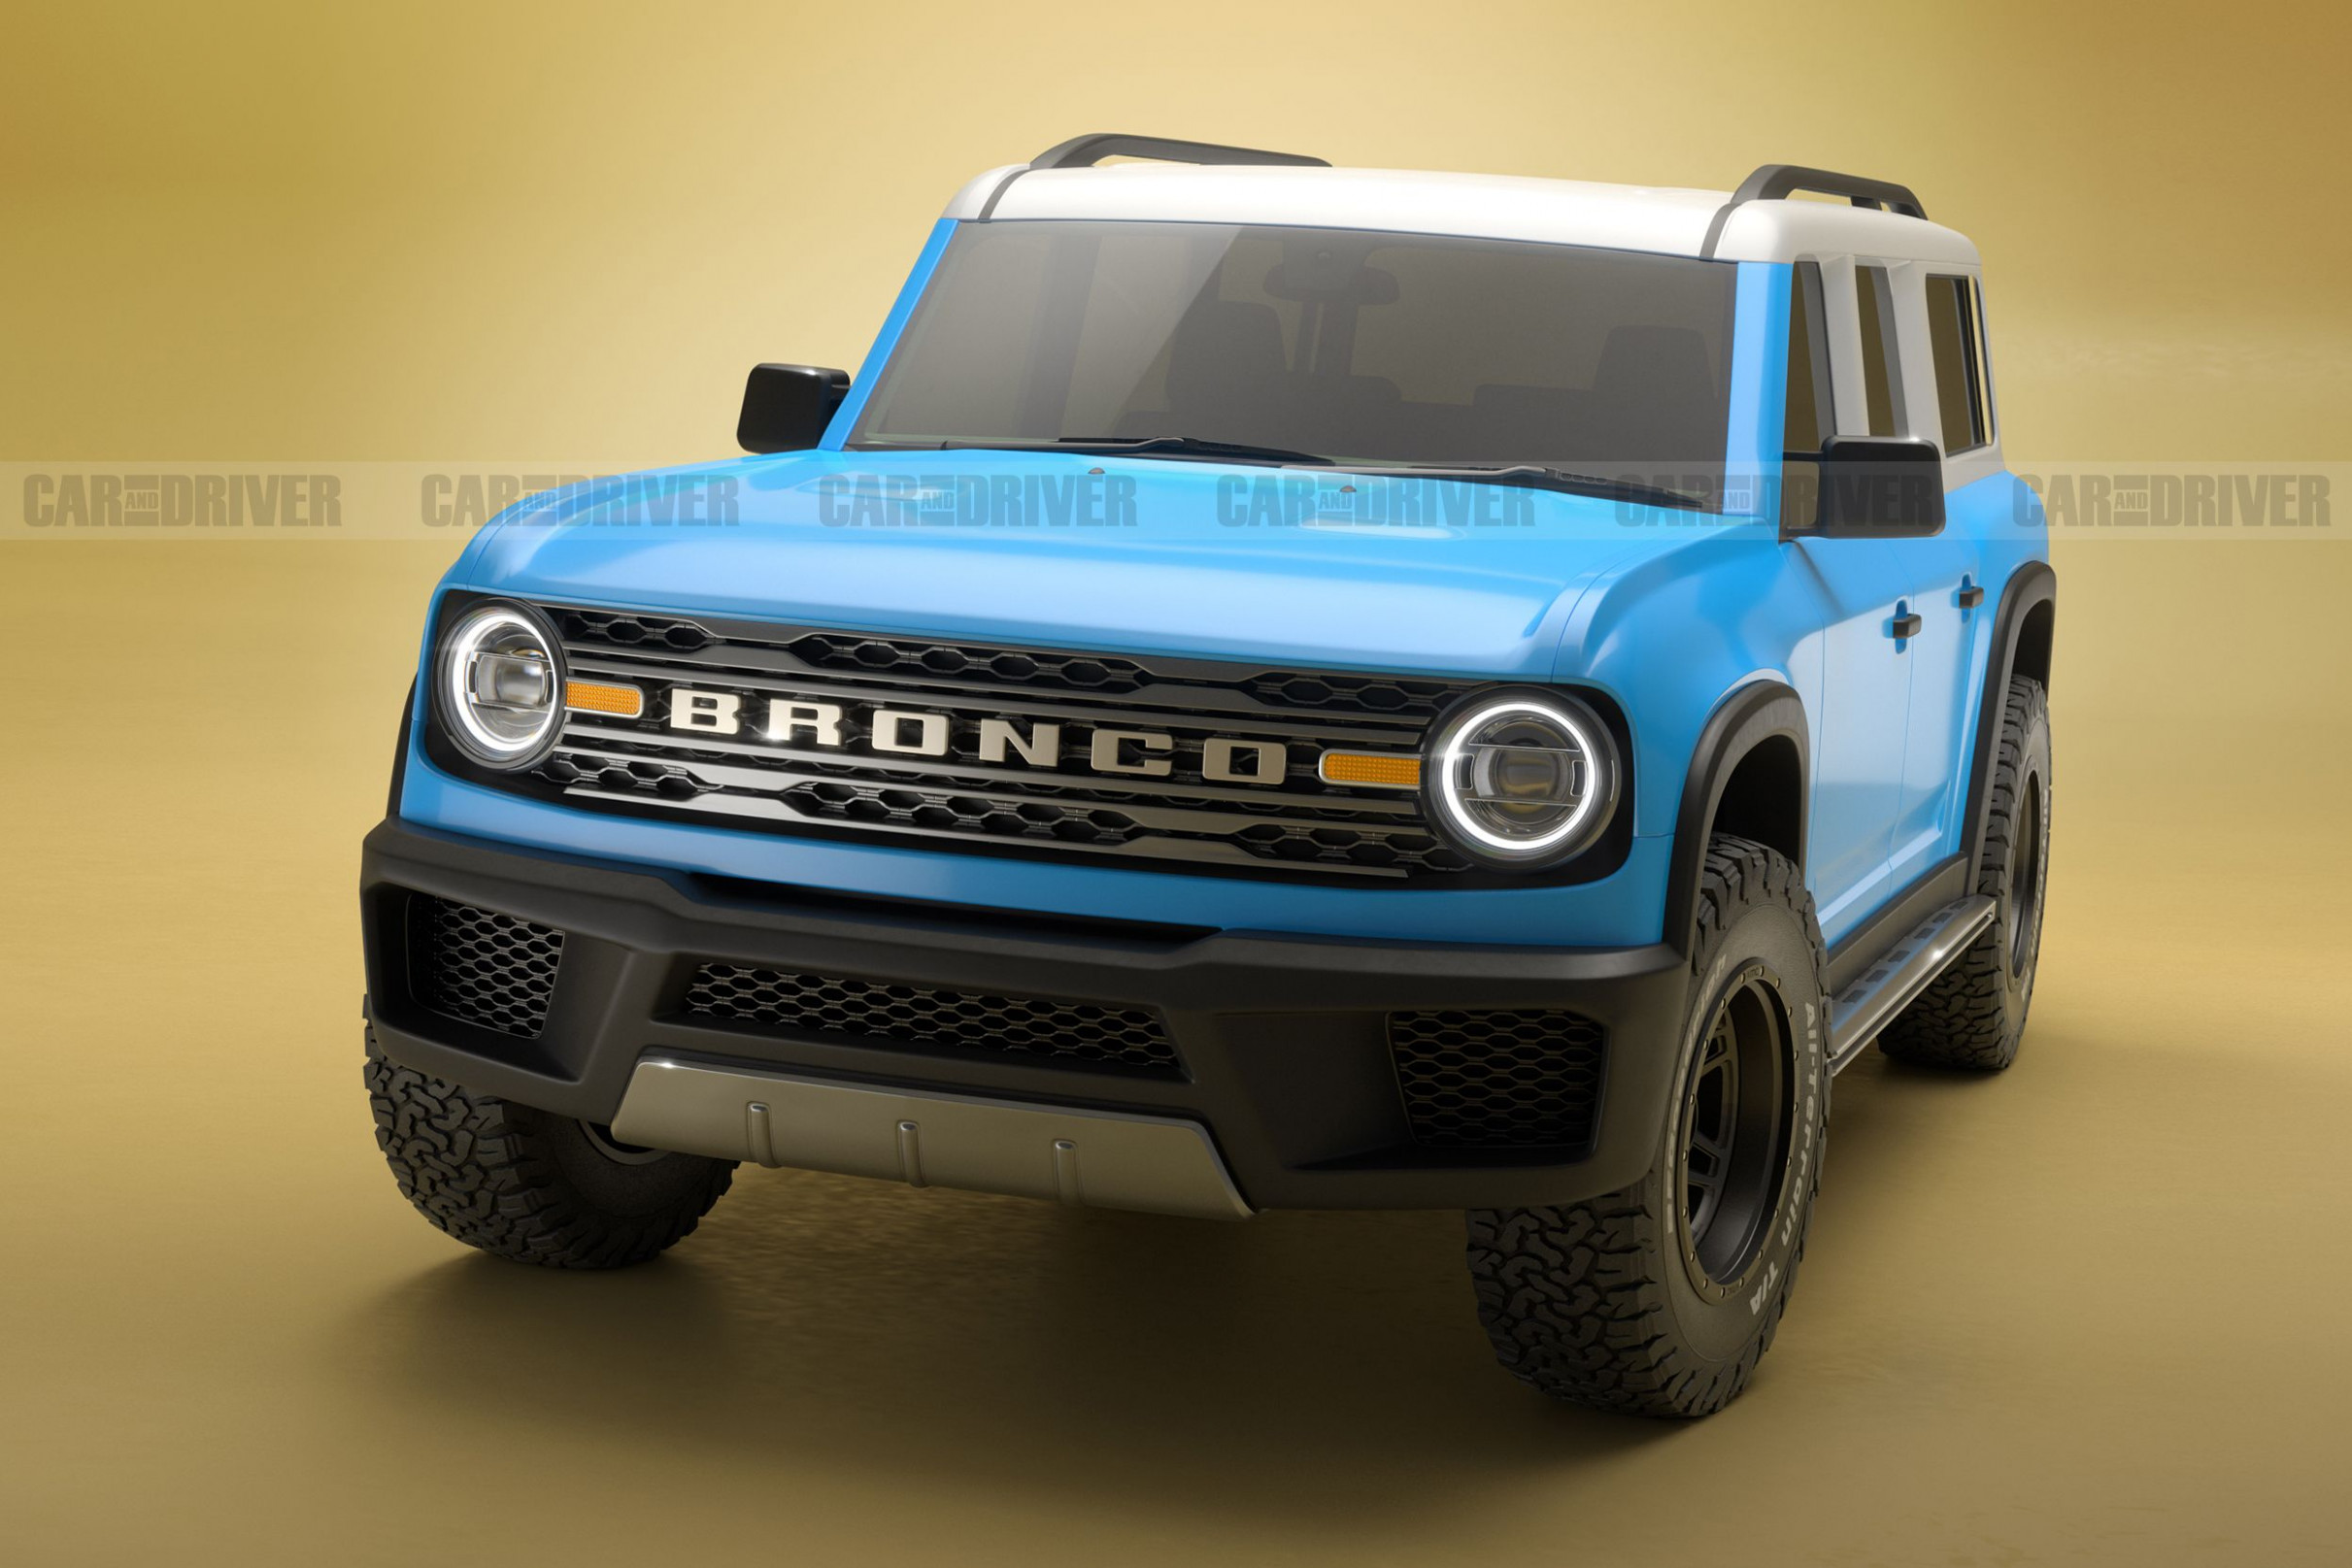 12 Ford Bronco: What We Know So Far